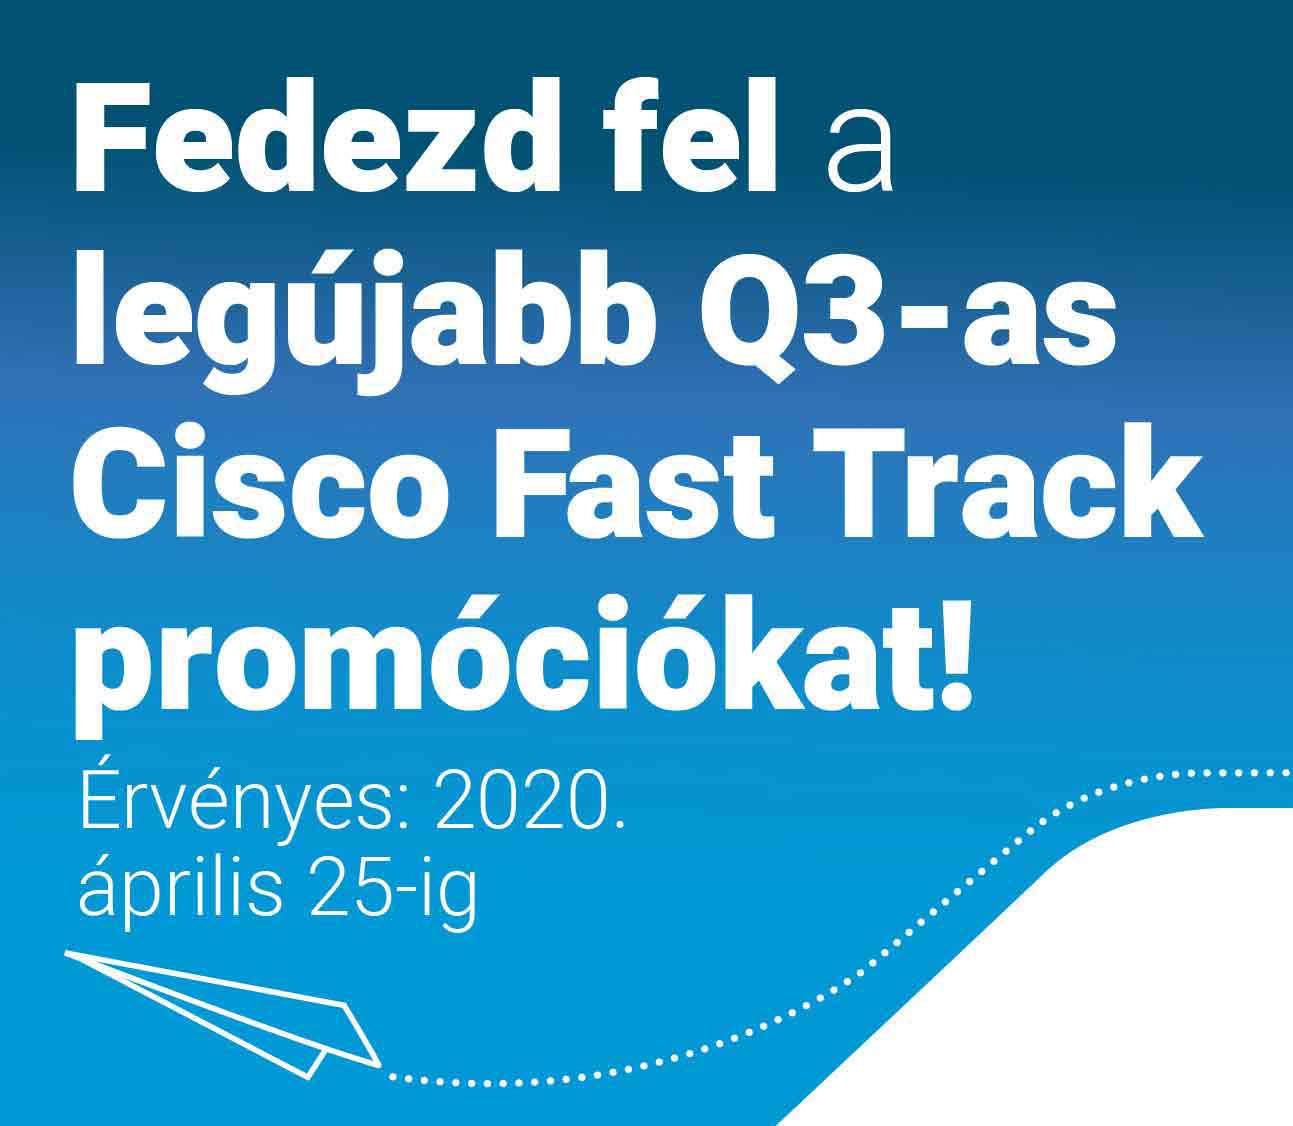 FY20 Fast Track Promotions Featured Image